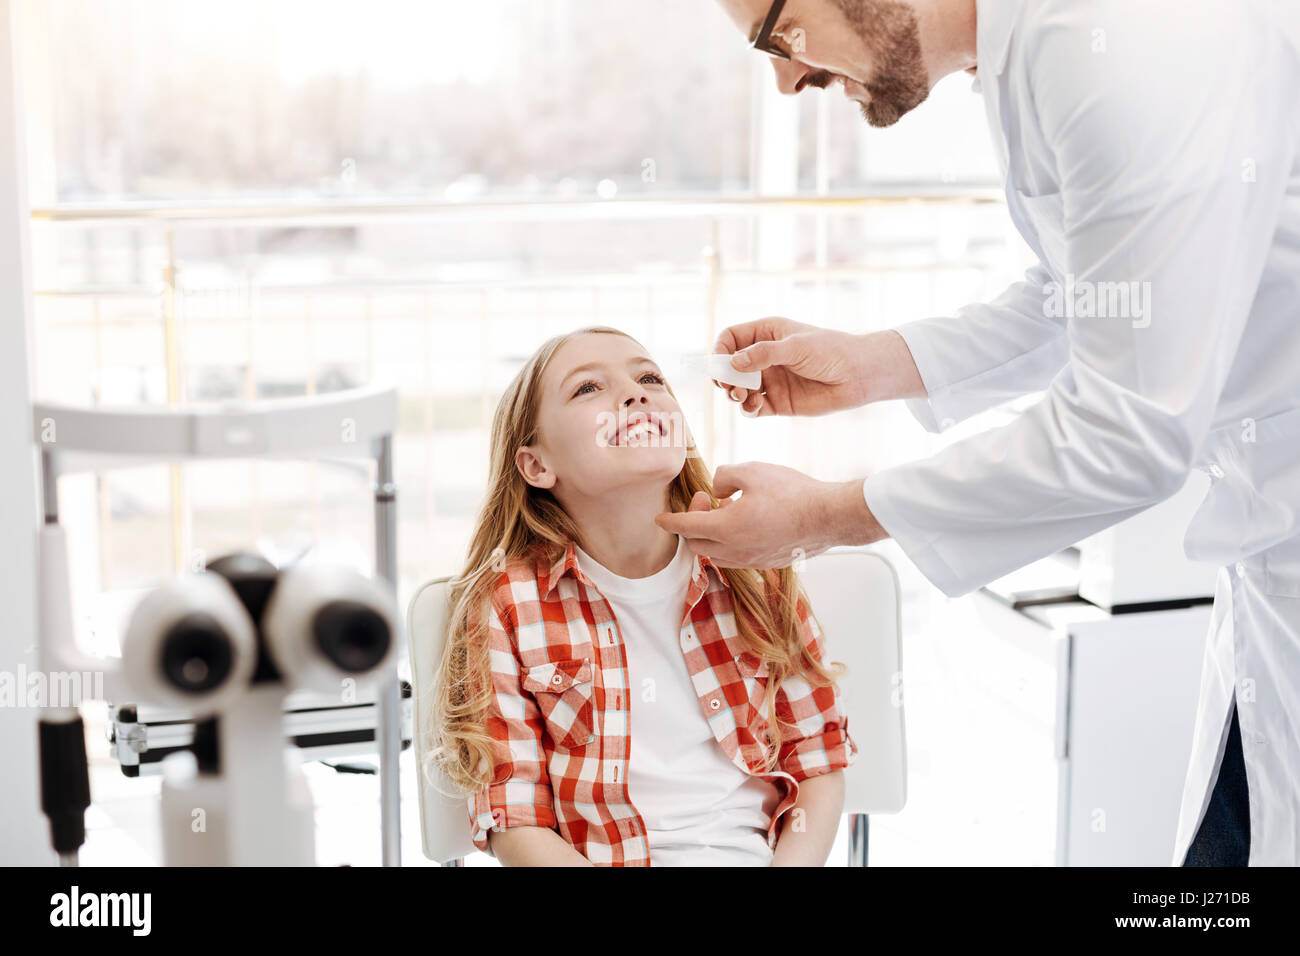 Careful prominent doctor instilling eyedrops - Stock Image